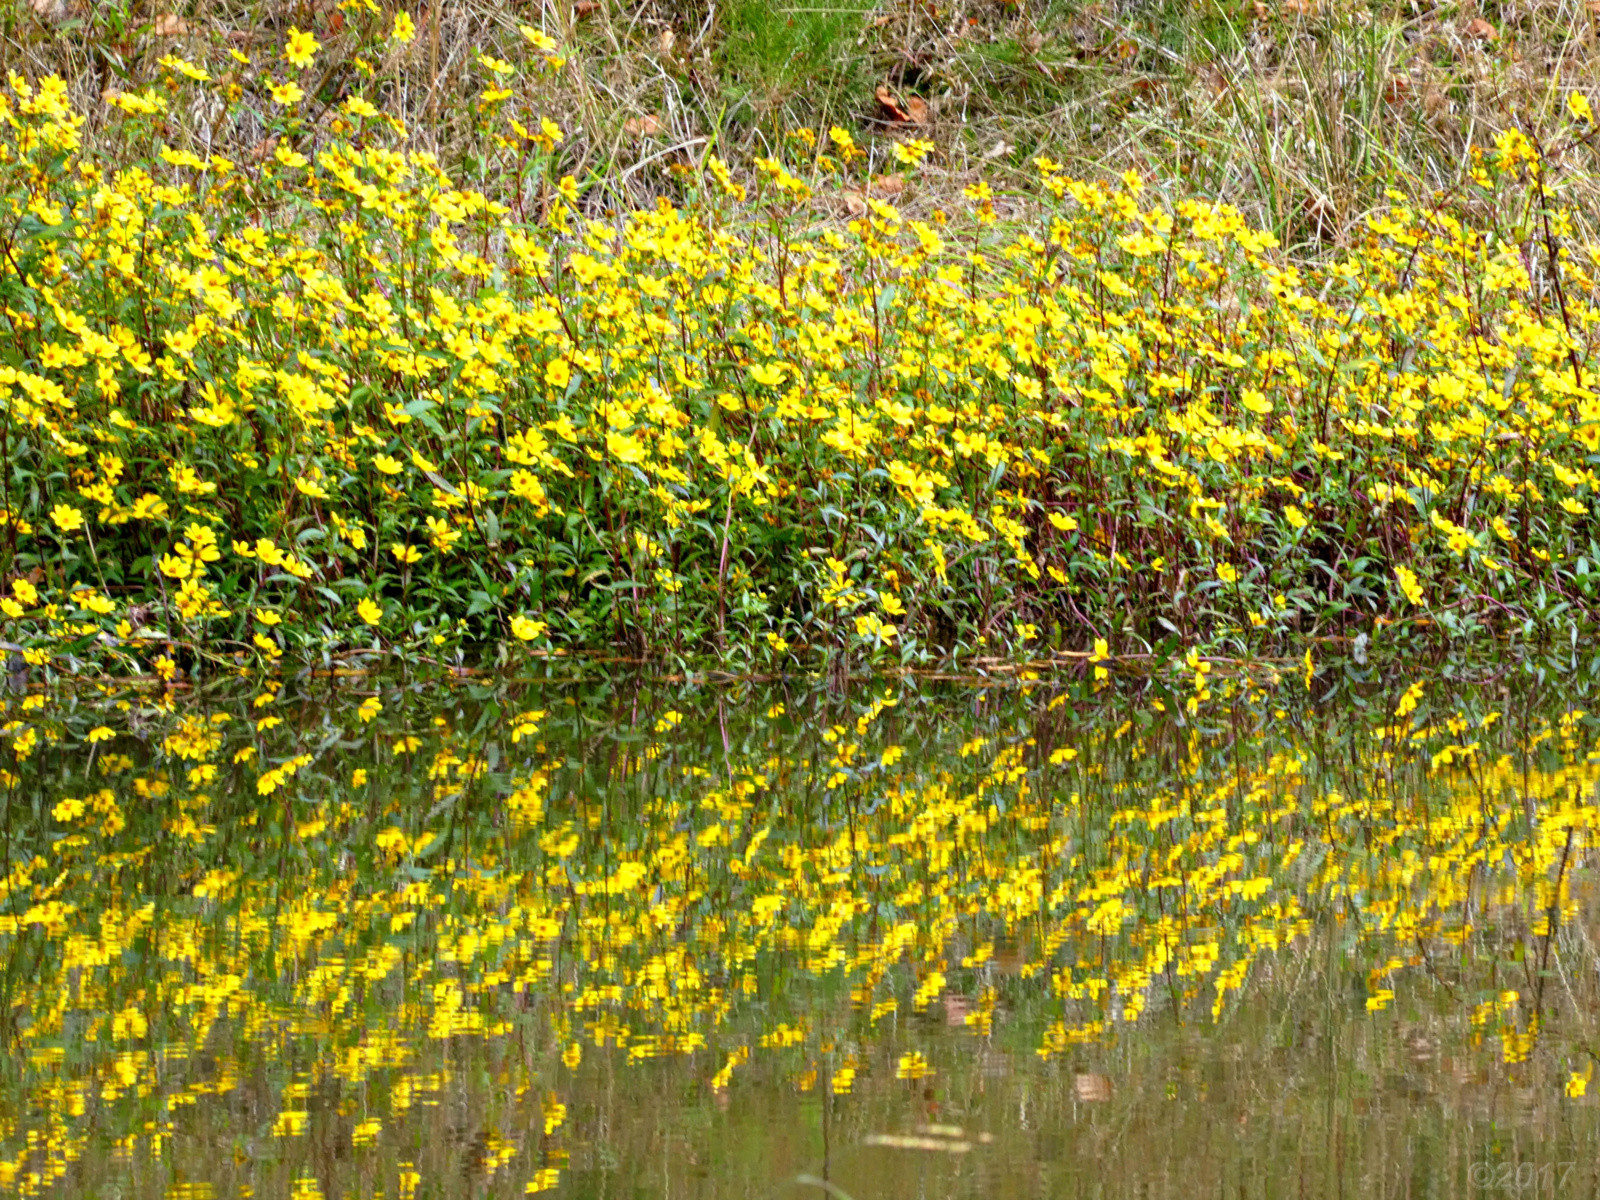 November 3, 2017 - Flowers growing along the pond on Hole 3